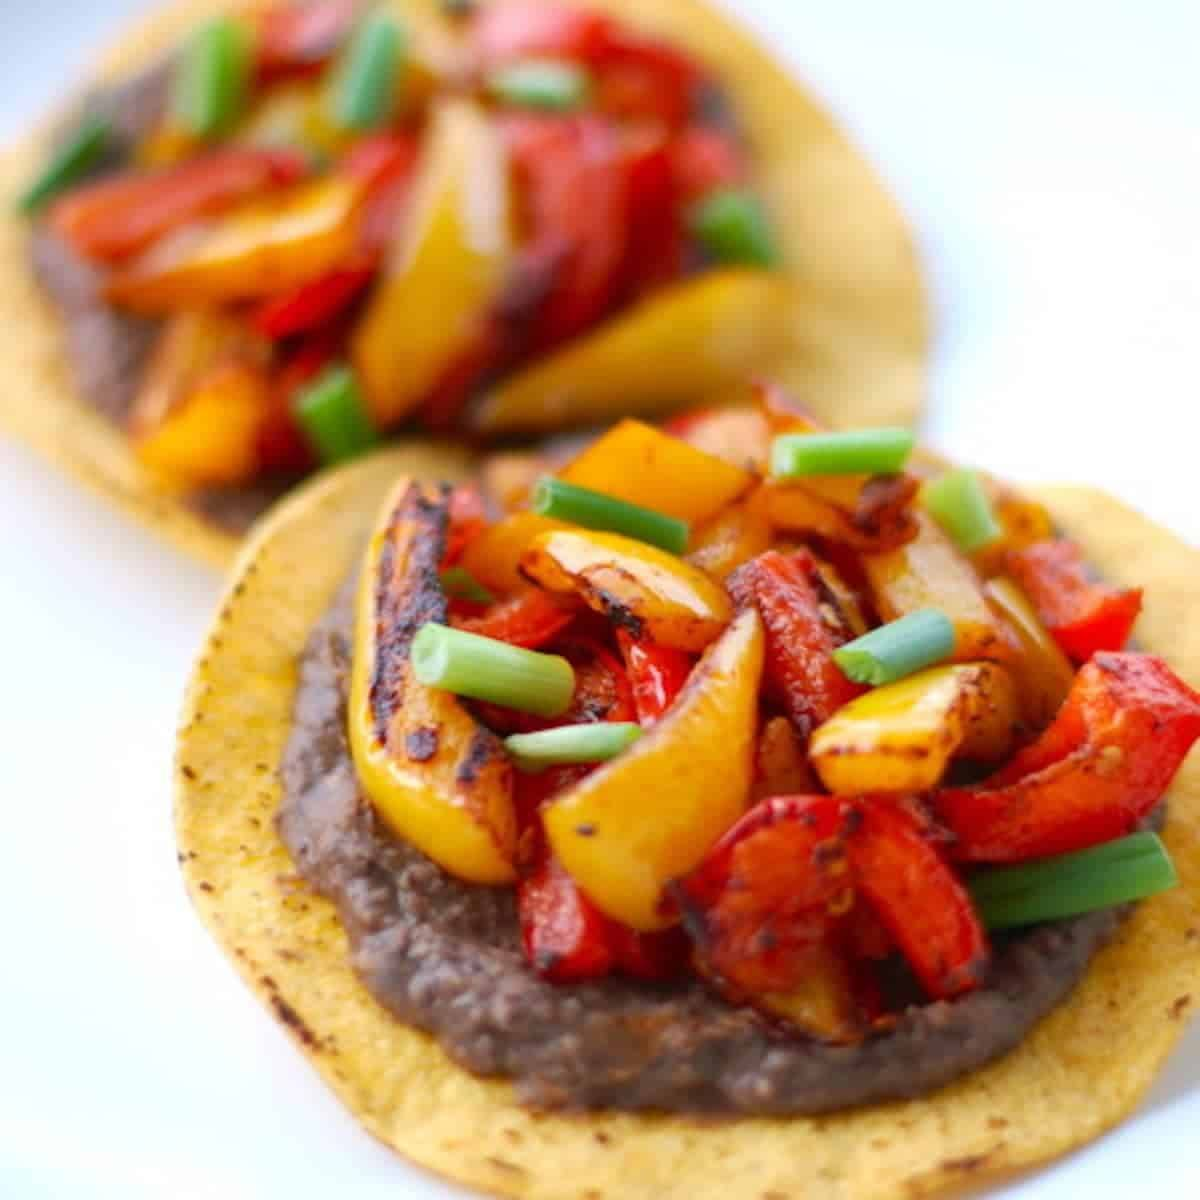 These roasted bell pepper tostadas are colorful and simple - just tortillas, refried beans, and roasted peppers. Vegan, vegetarian, and healthy. | pinchofyum.com